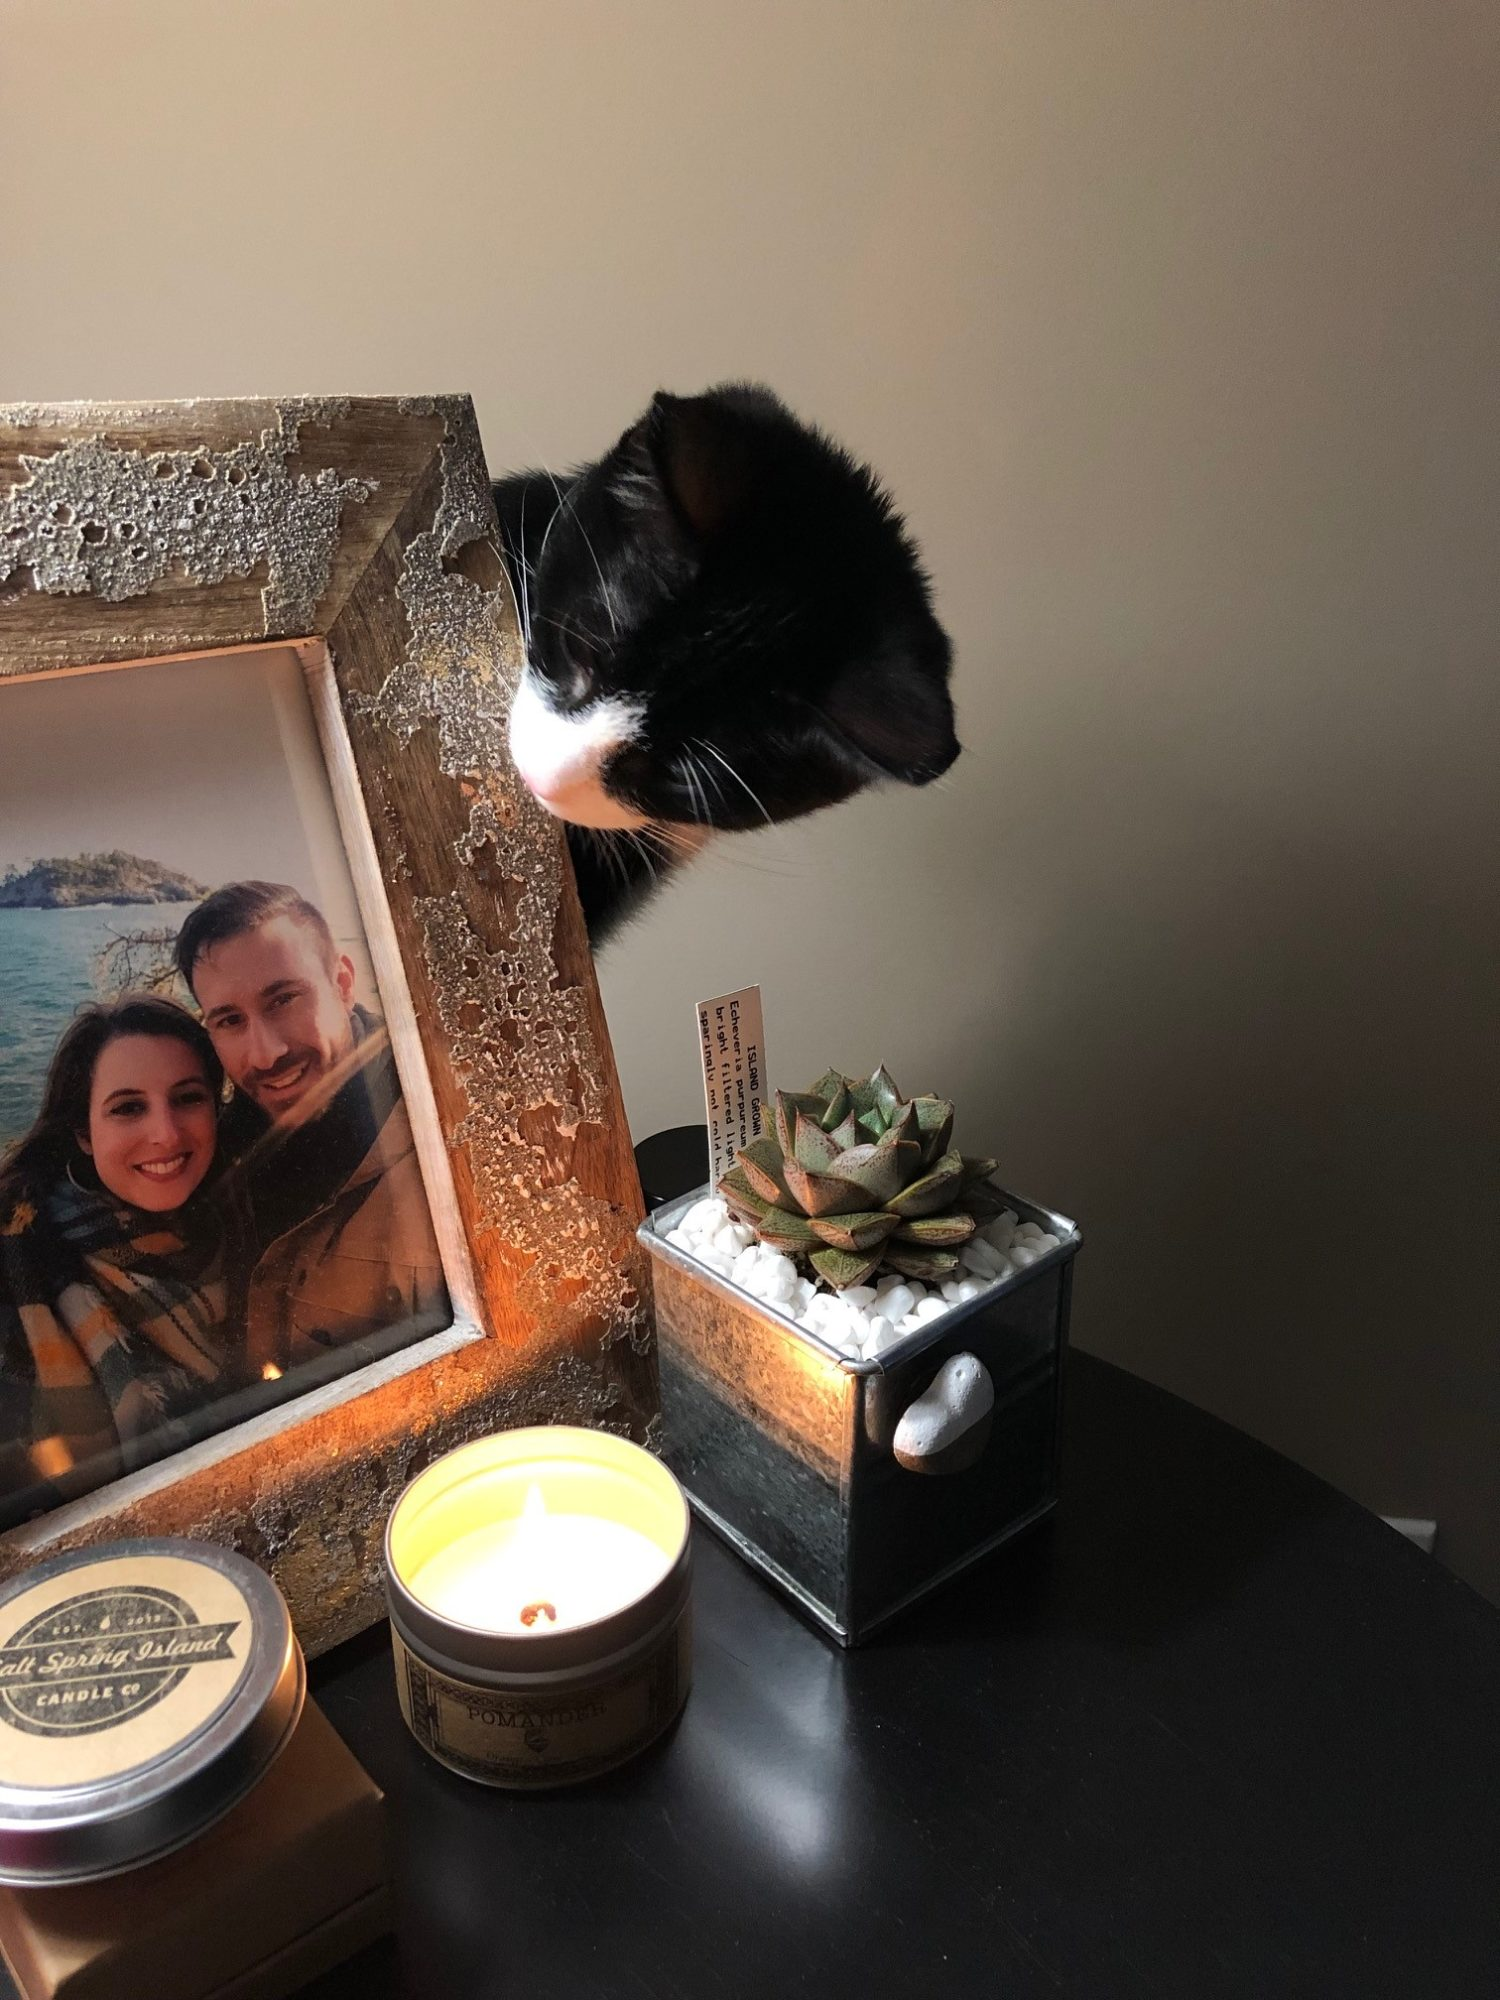 Howard the tuxedo kitten takes a look at a photo of his guardians.